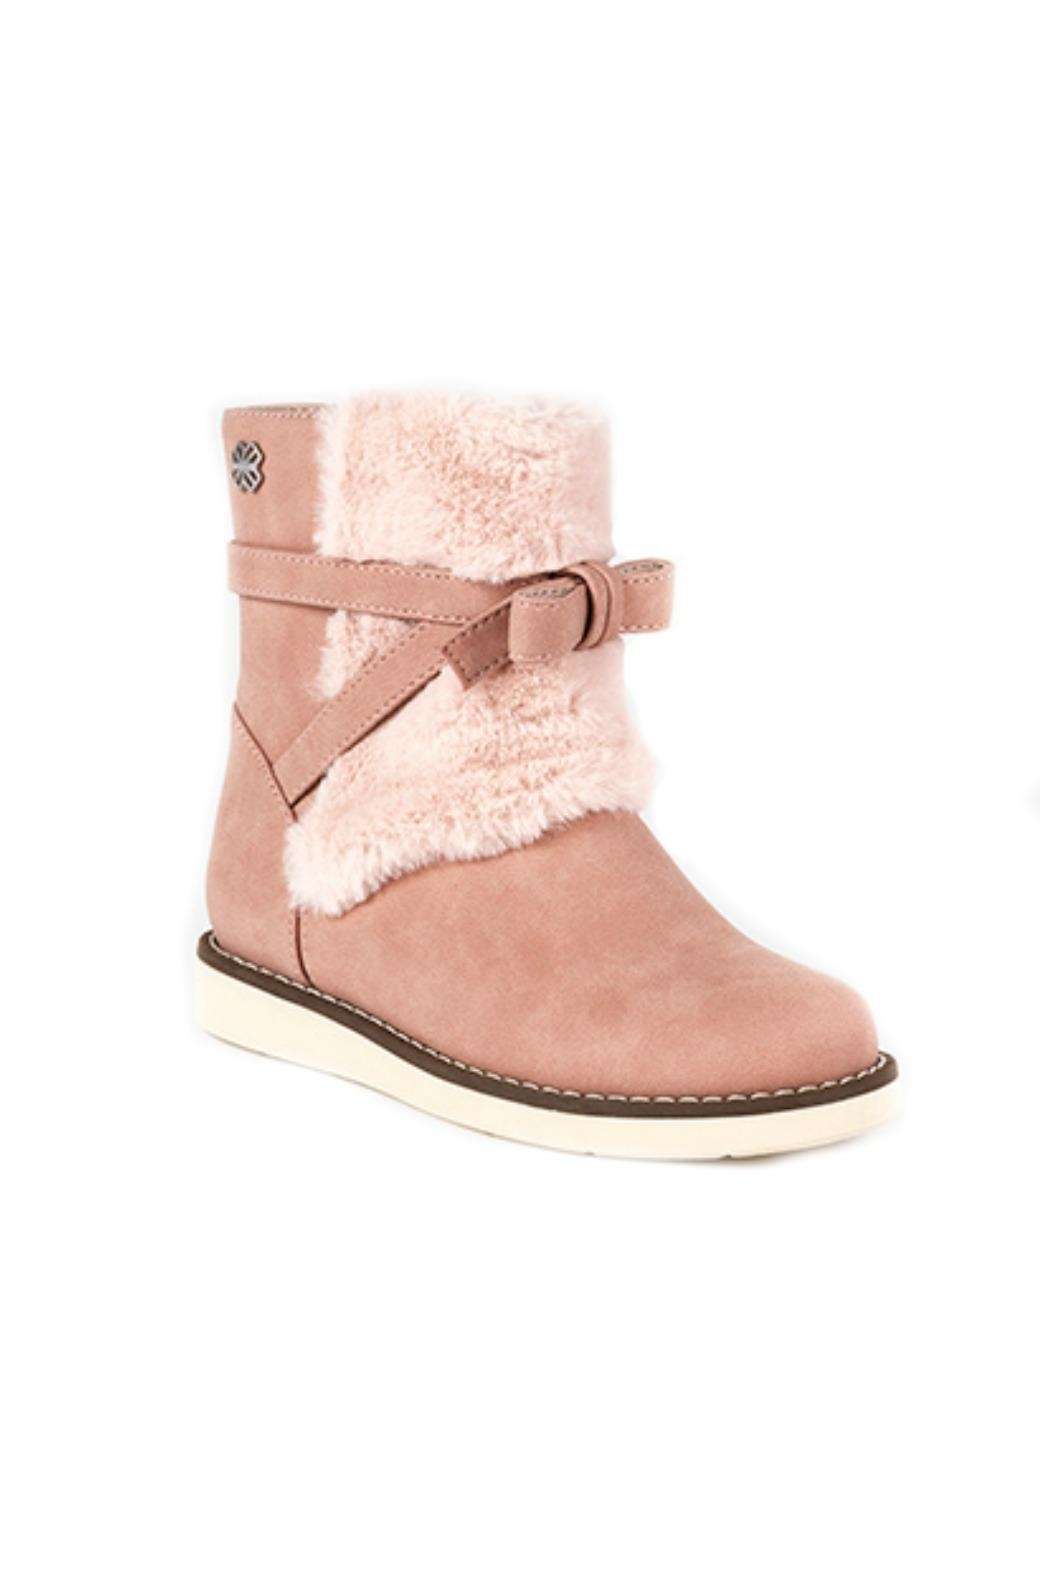 Mayoral Ankle-Boots-In-Pink-With-Faux-Fur-Detailing - Main Image